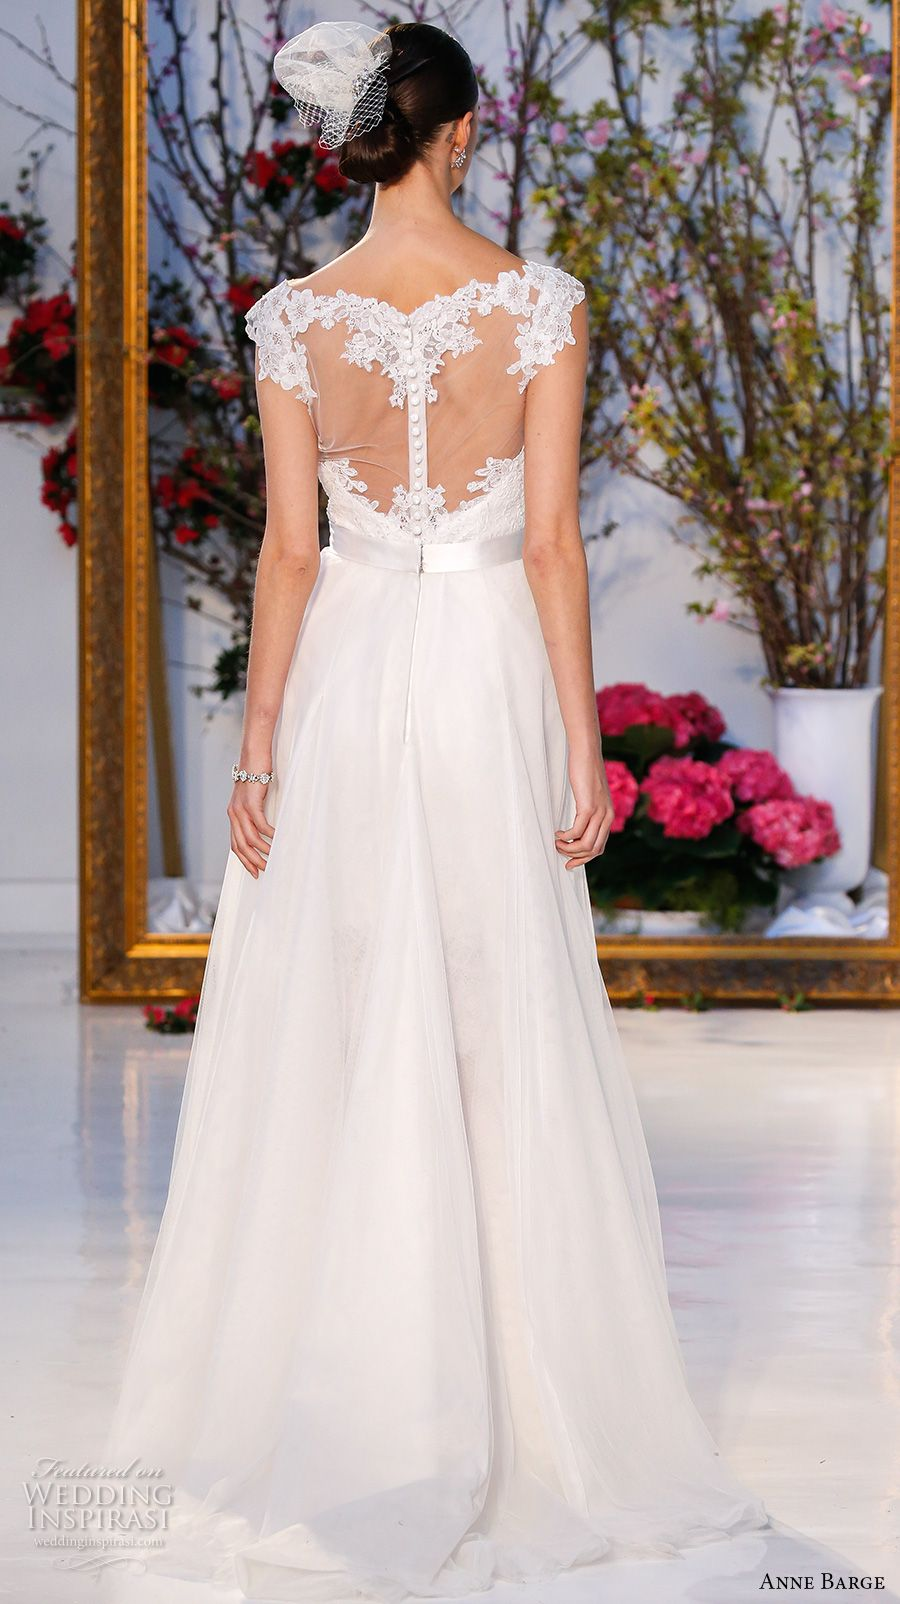 Lace wedding dress with cap sleeves sweetheart neckline  Anne Barge Spring  Wedding Dresses  Anne barge Wedding dress